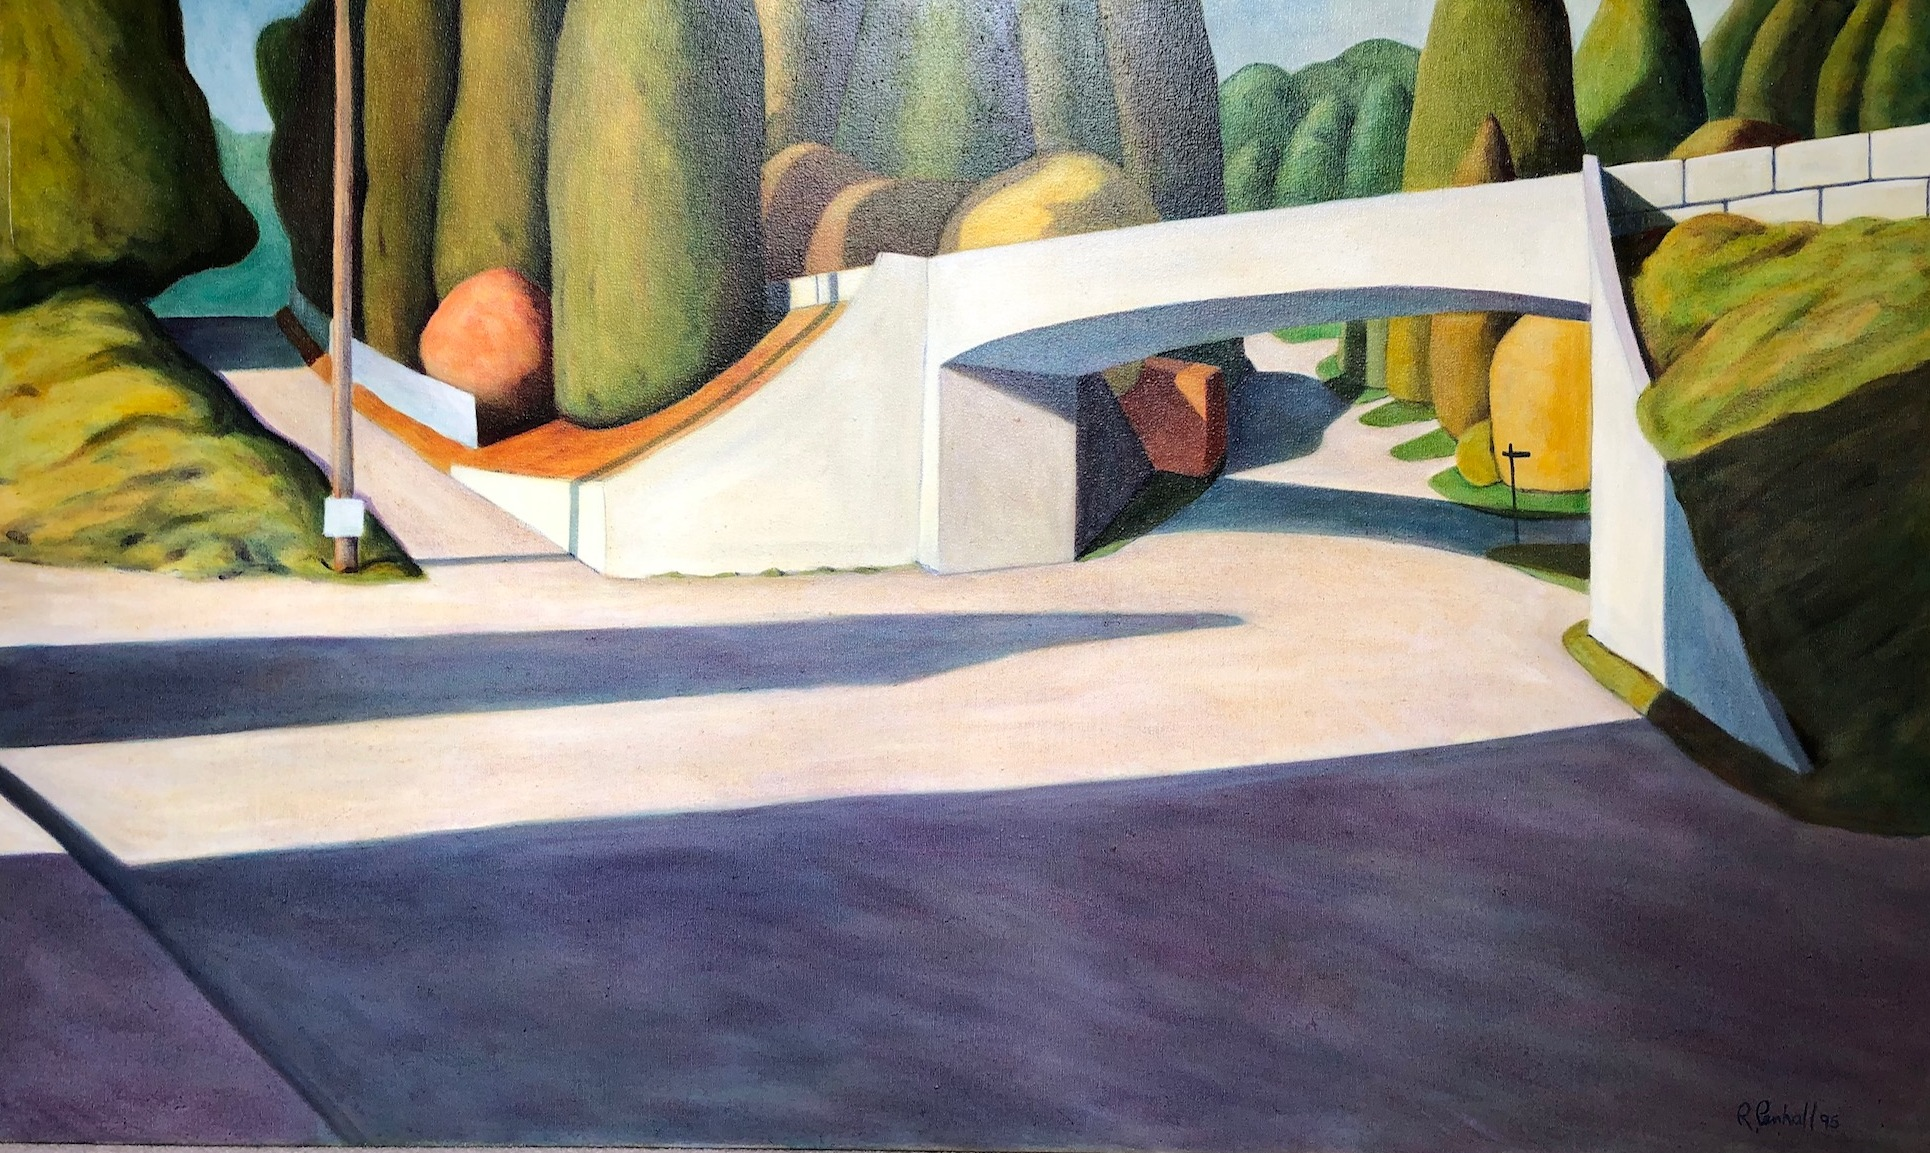 West Bay Turnaround artwork by Ross Penhall - art listed for sale on Artplode